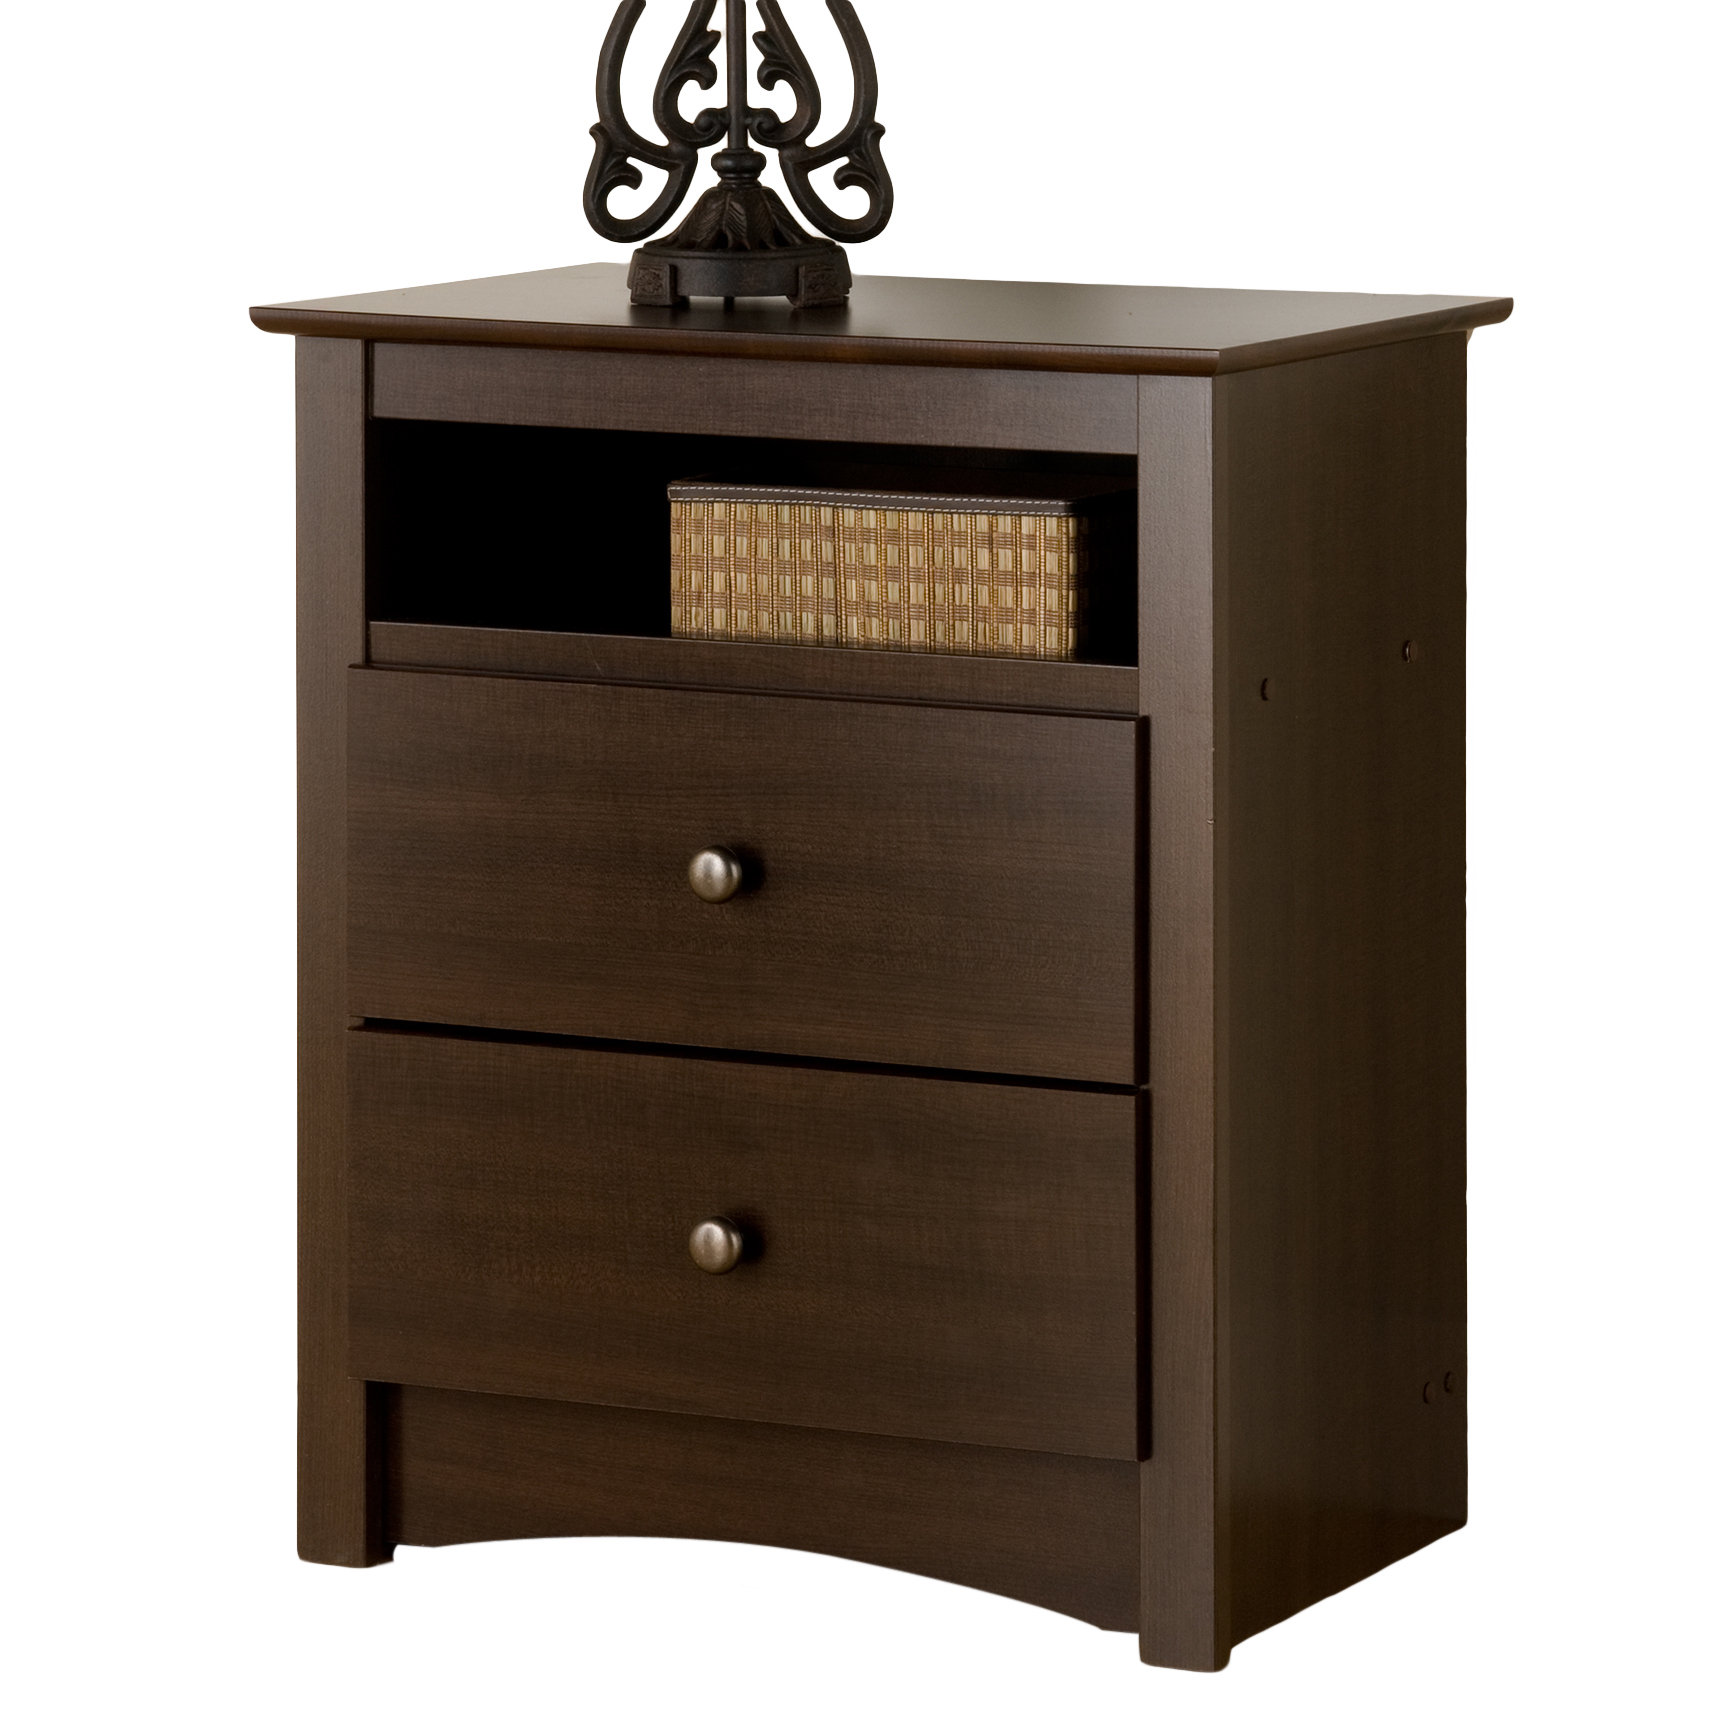 Fremont Espresso 2 Drawer Tall Night Stand With Open Shelf